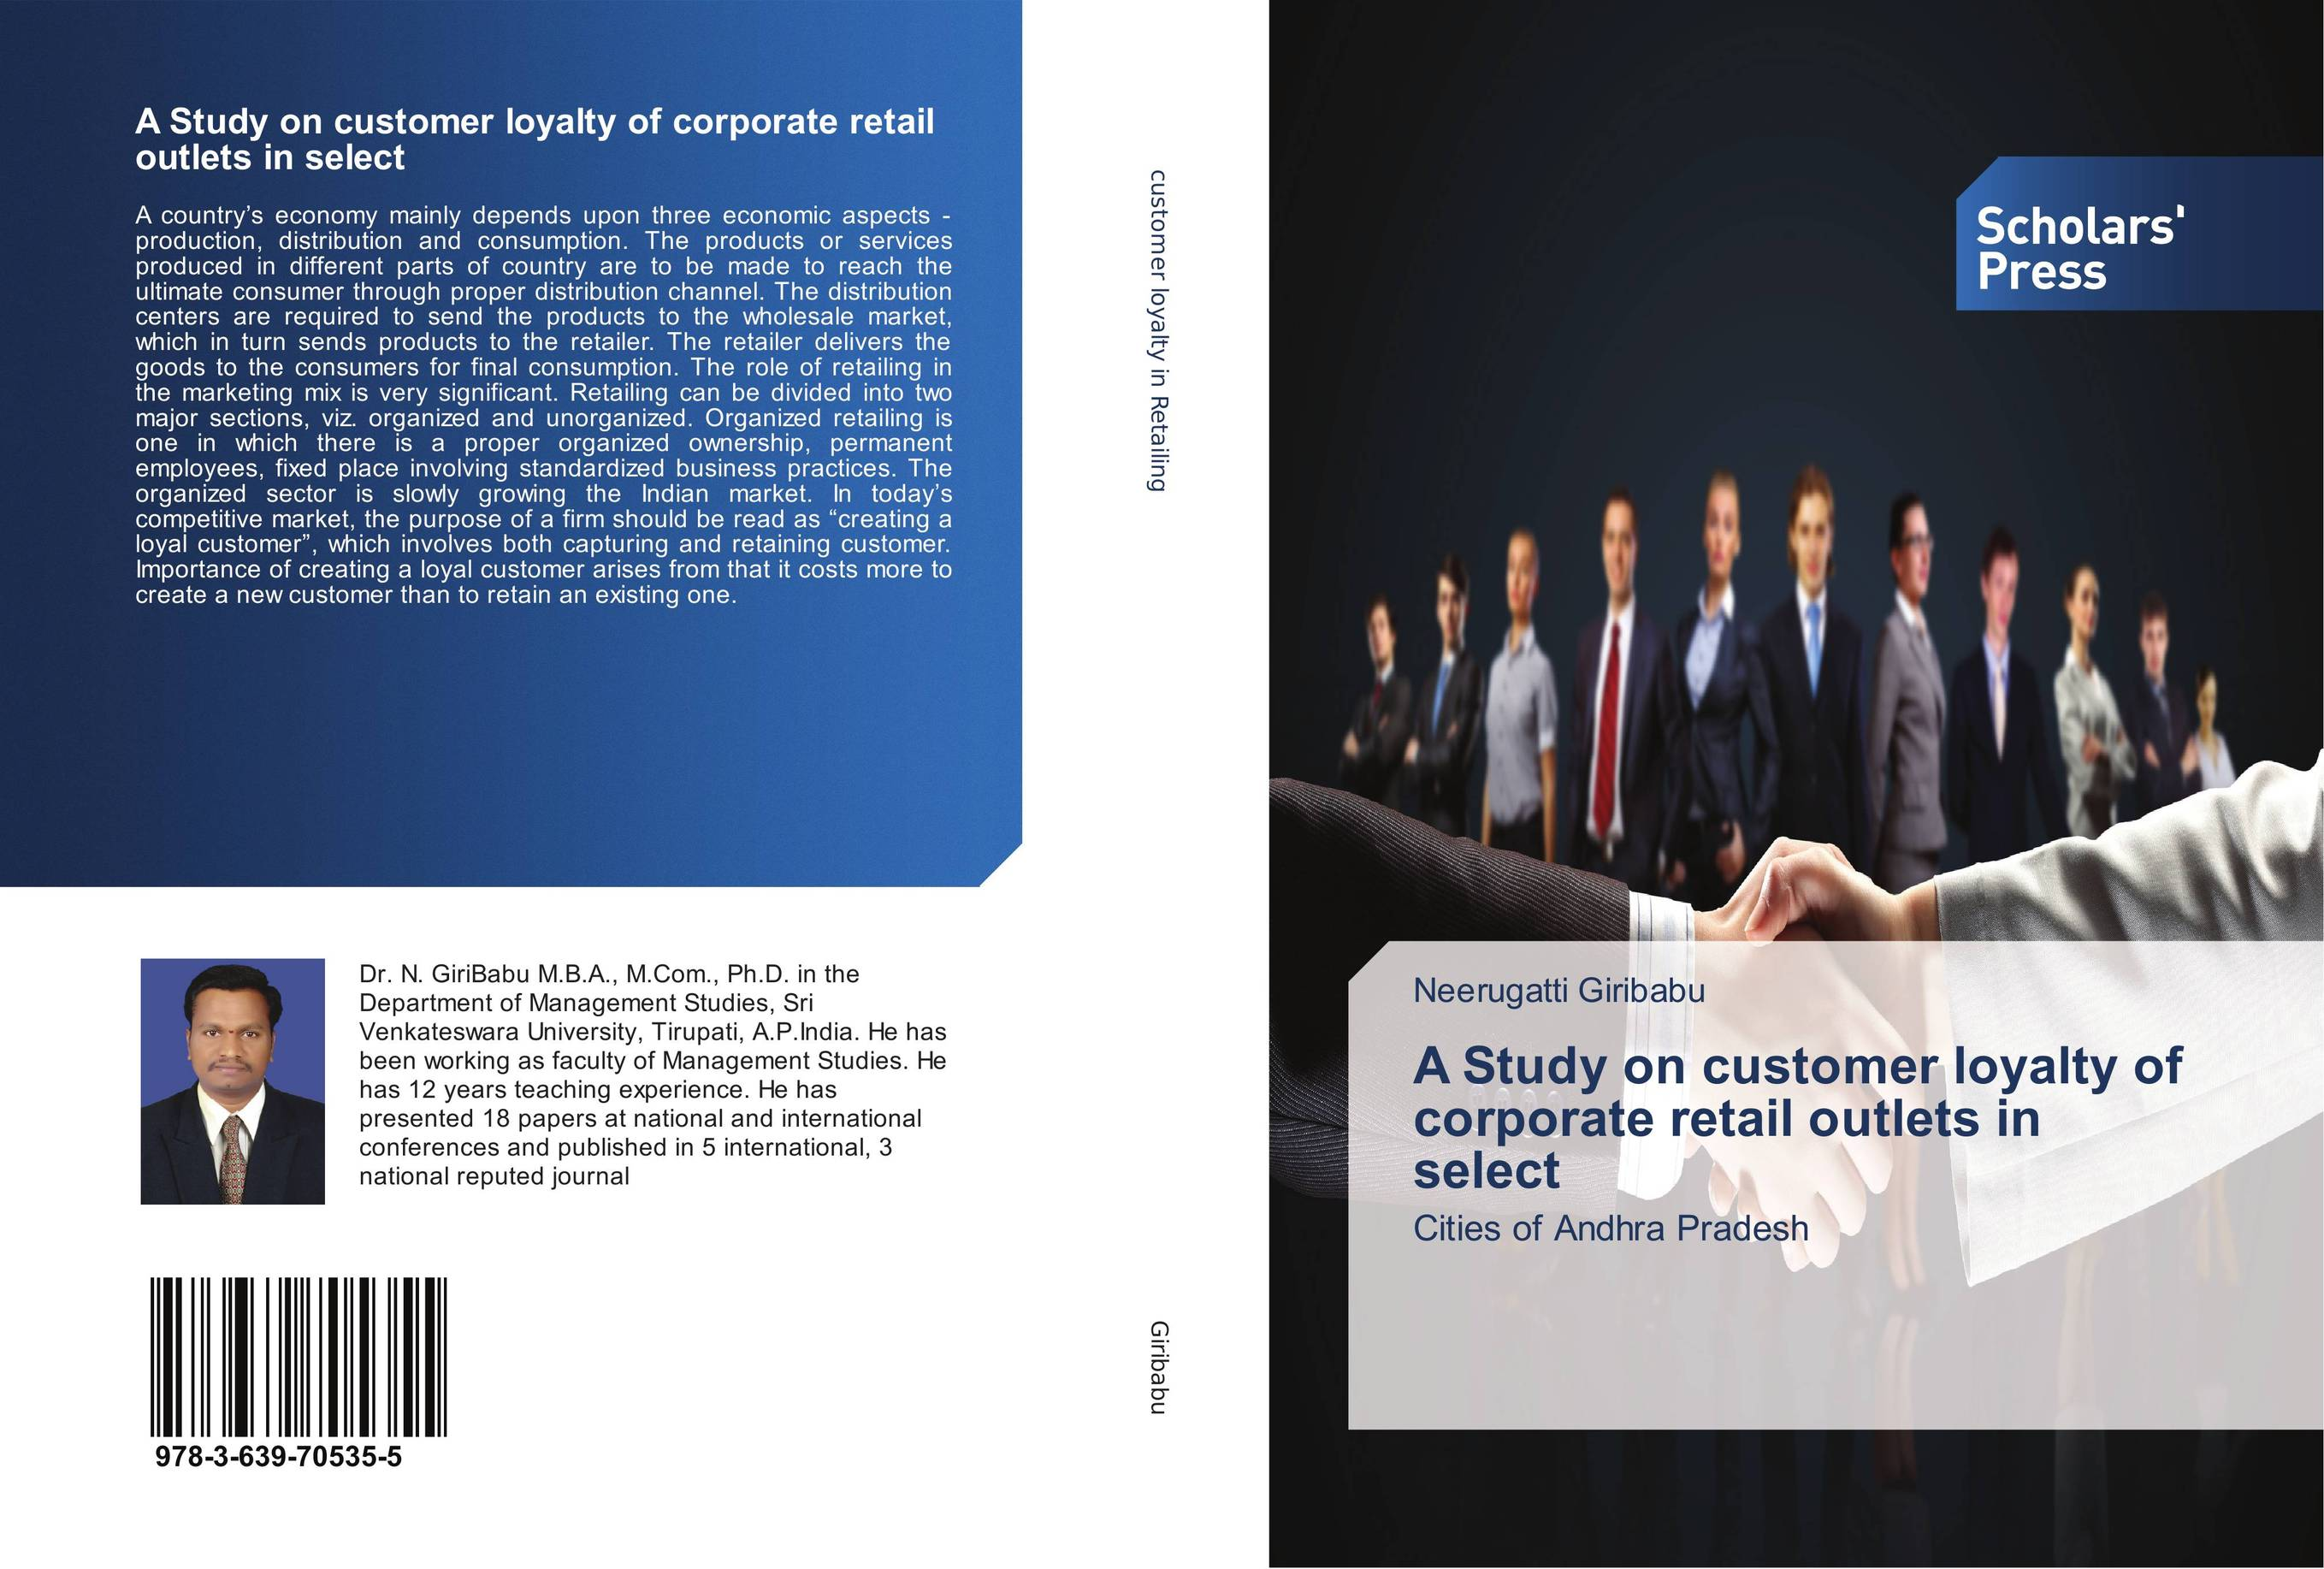 A Study on customer loyalty of corporate retail outlets in select